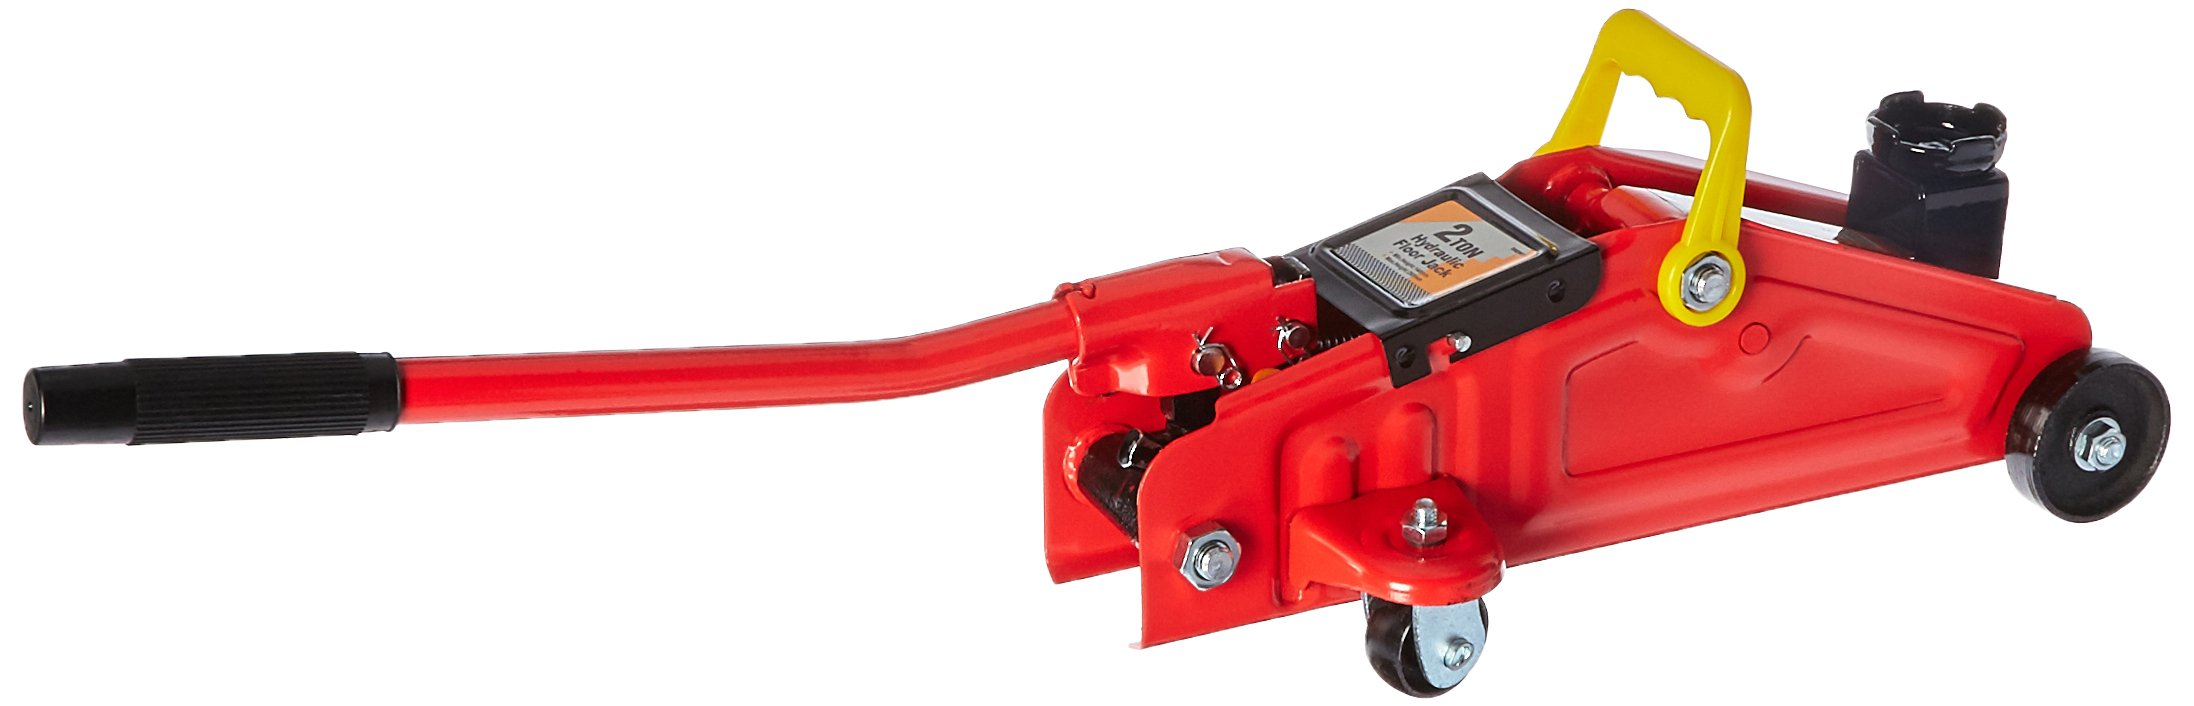 ATE Pro. USA 90103 2 Ton Hydraulic Floor Jack, 17.32'' Height, 6.3'' Width, 8.66'' Length